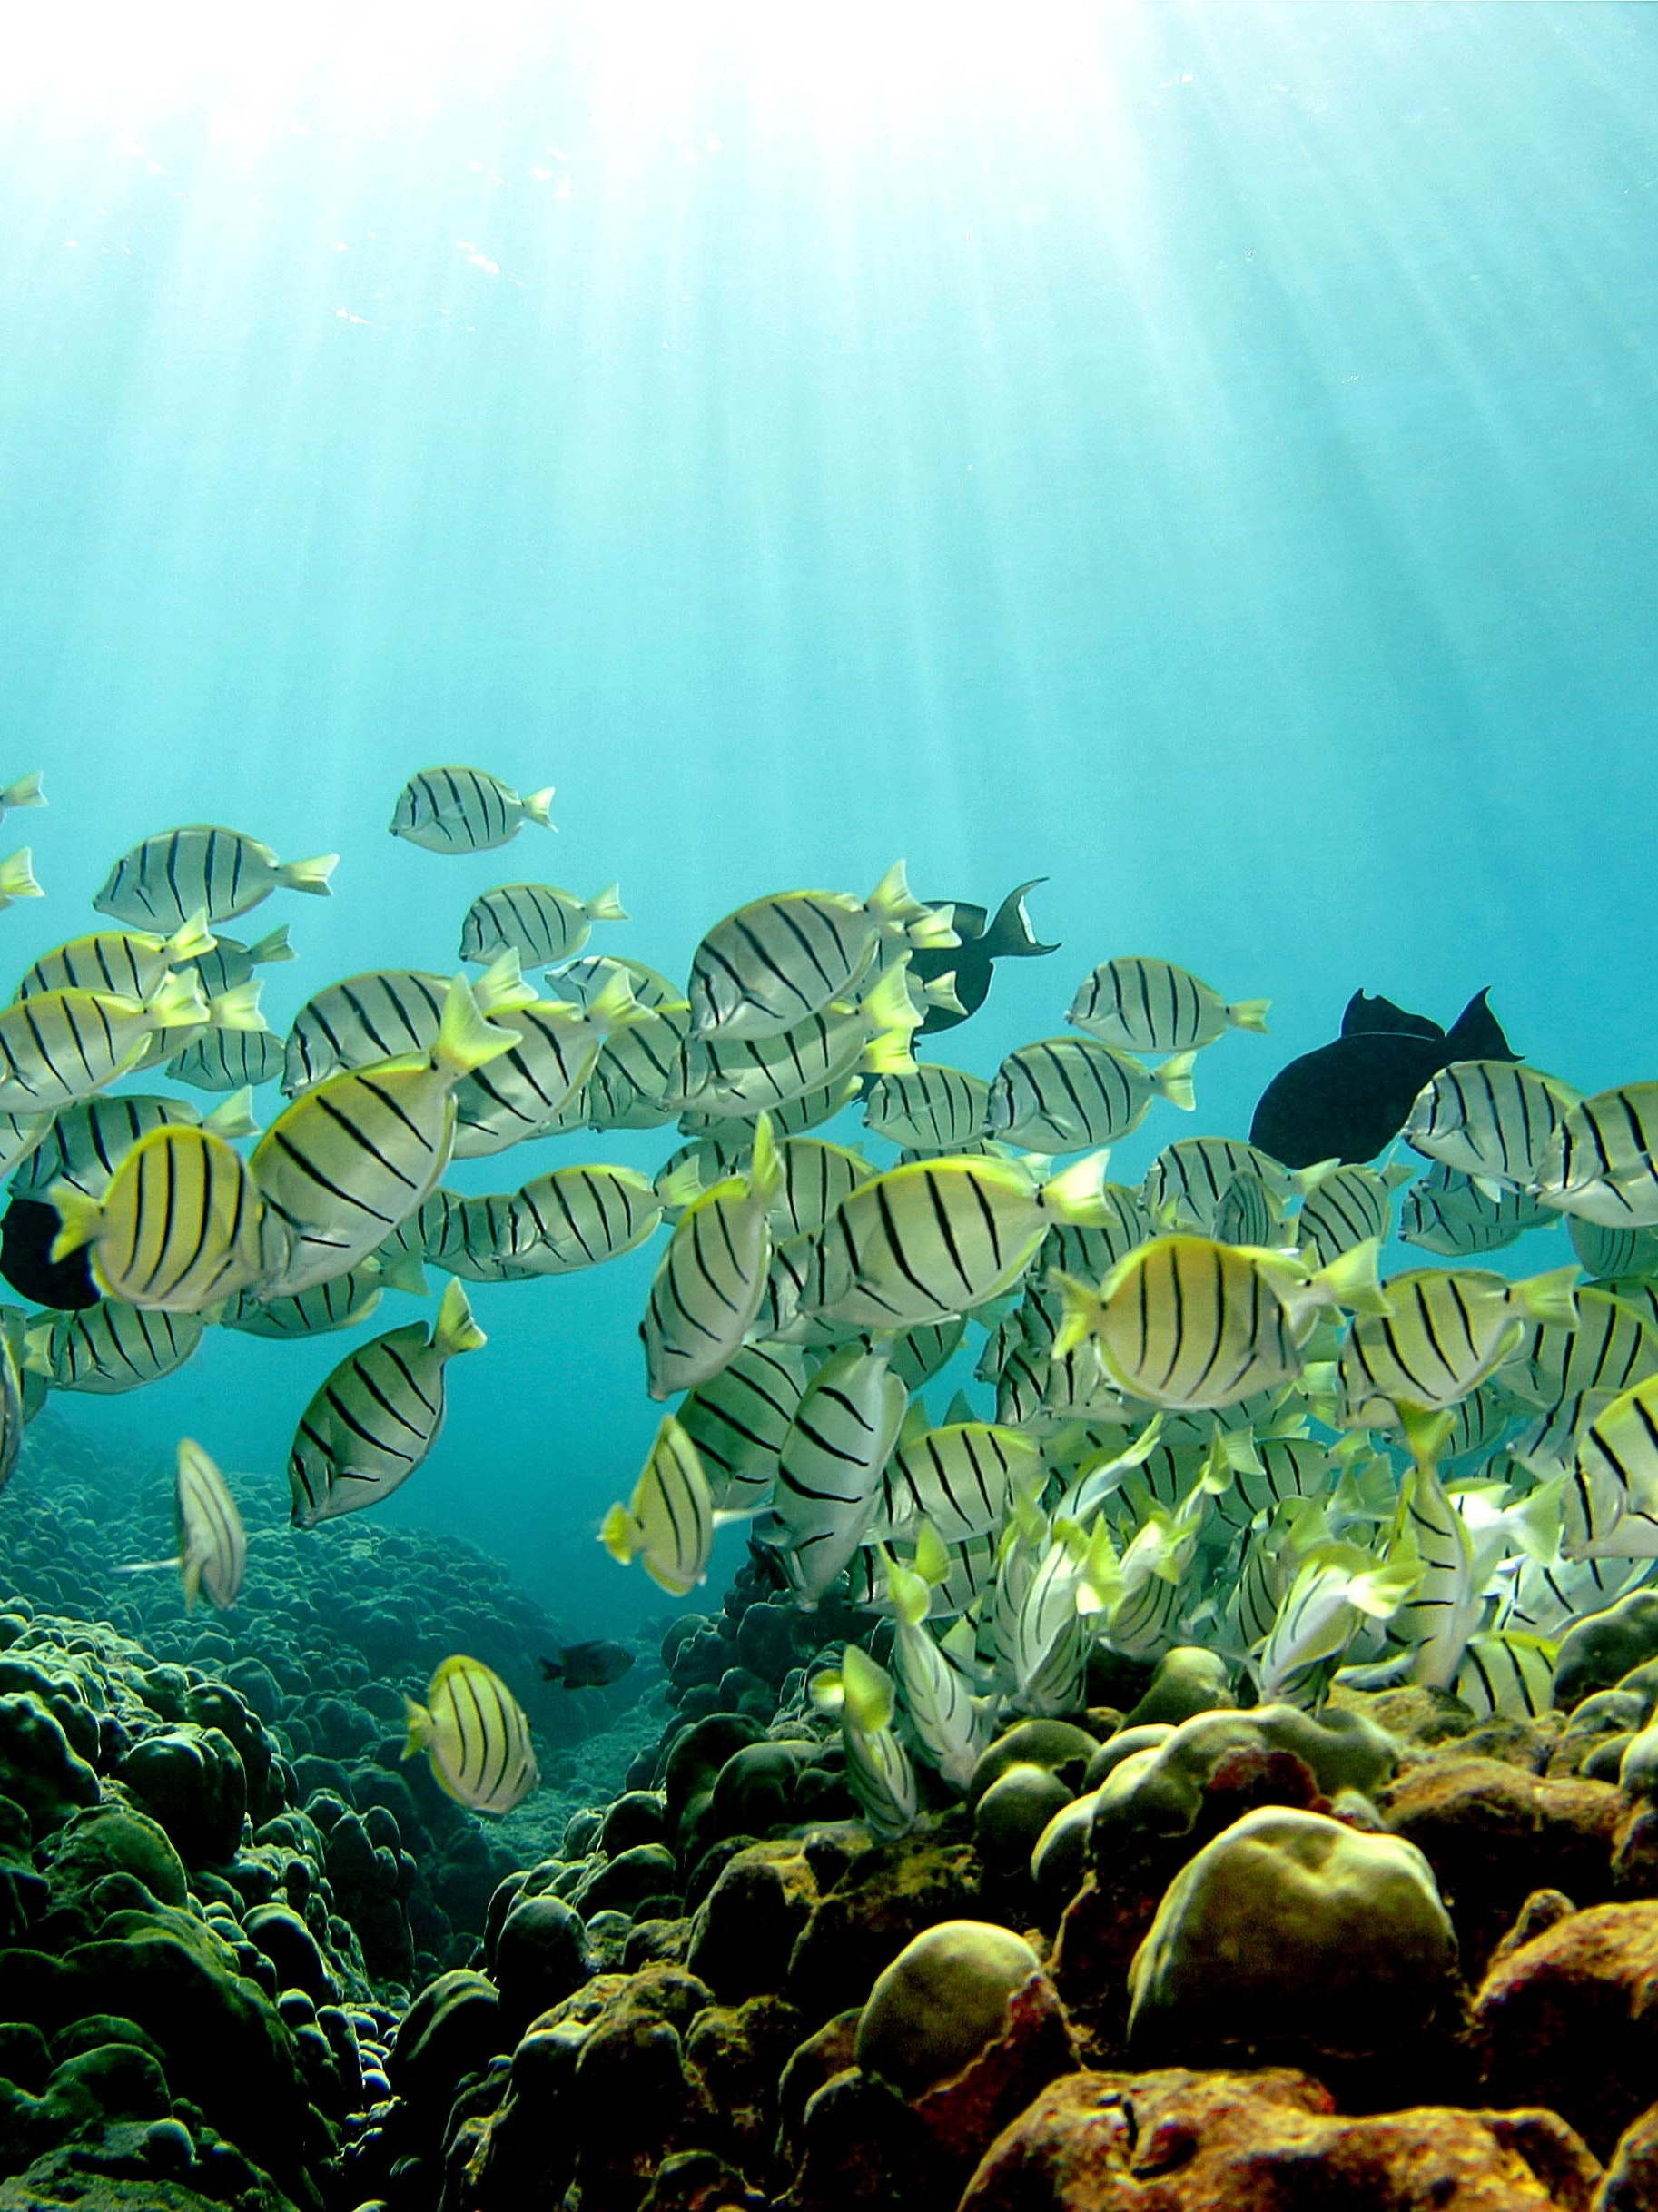 a report on the issues of the decline in fish population in the ocean Start studying ap environmental science unit 7 exam review and often results in the bycatch of many ocean fish an environmental issue is known.